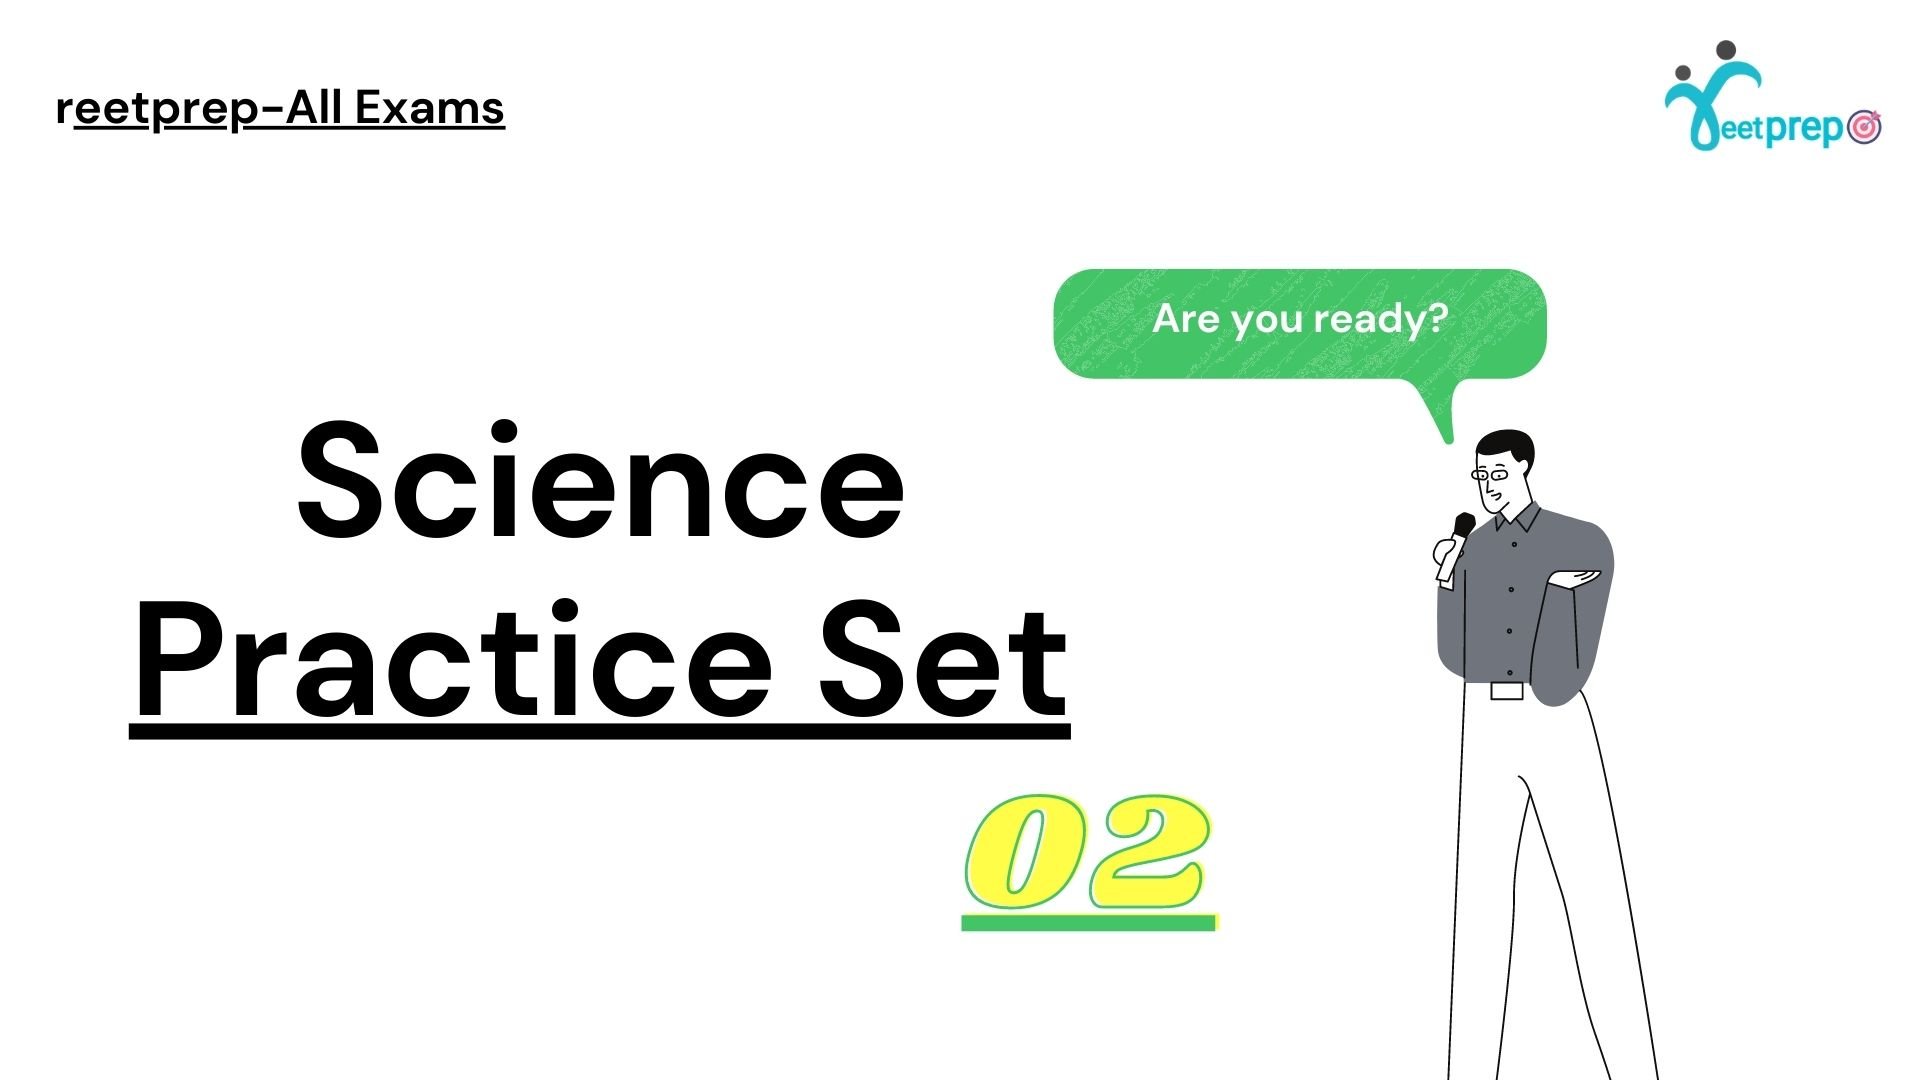 General Science Practice Set - 02